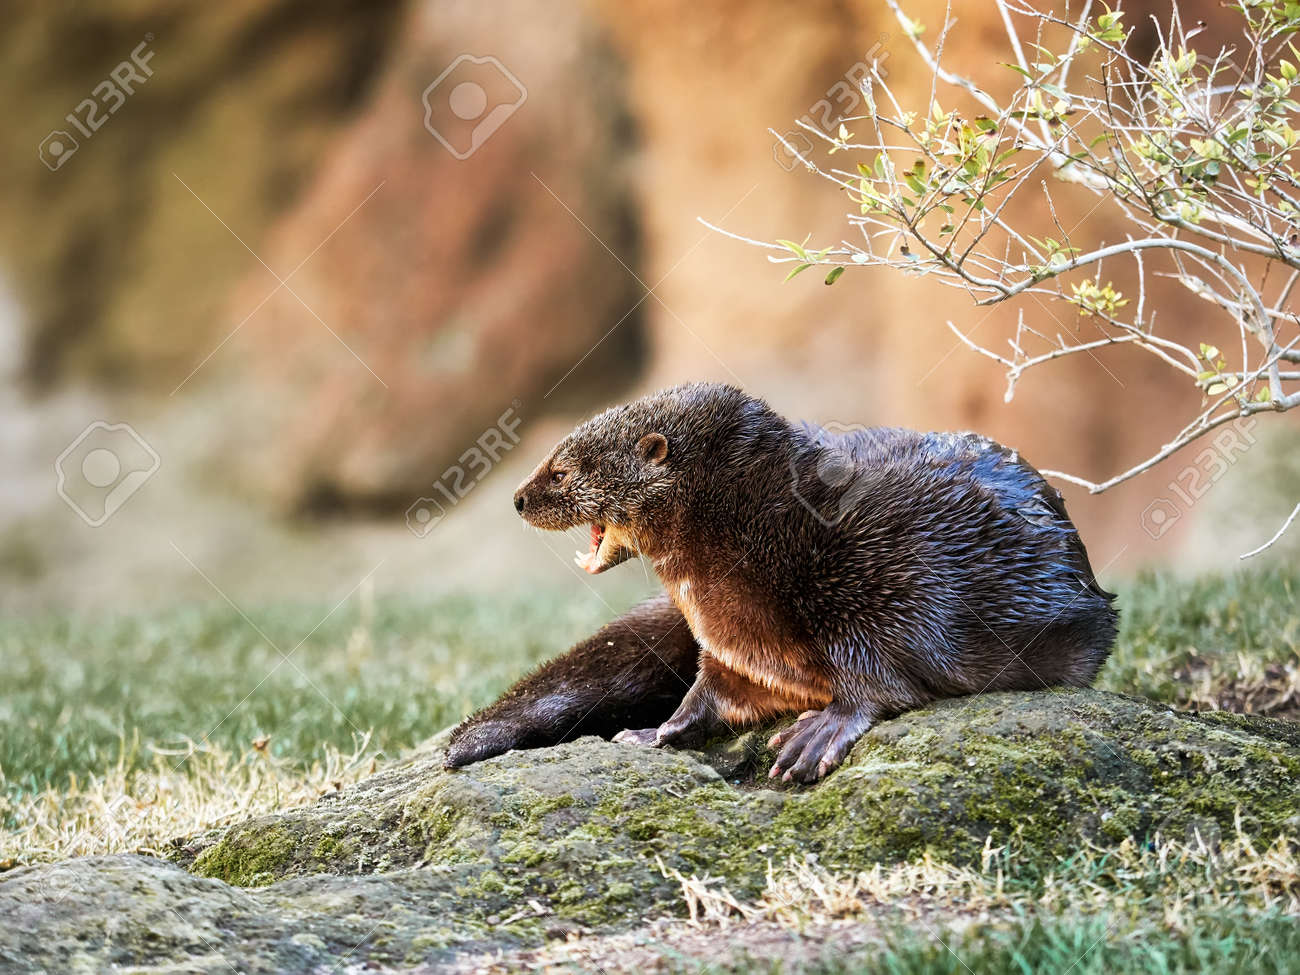 spotted necked otter, typical African aquatic animal, surrounded by trees and grass - 162882550